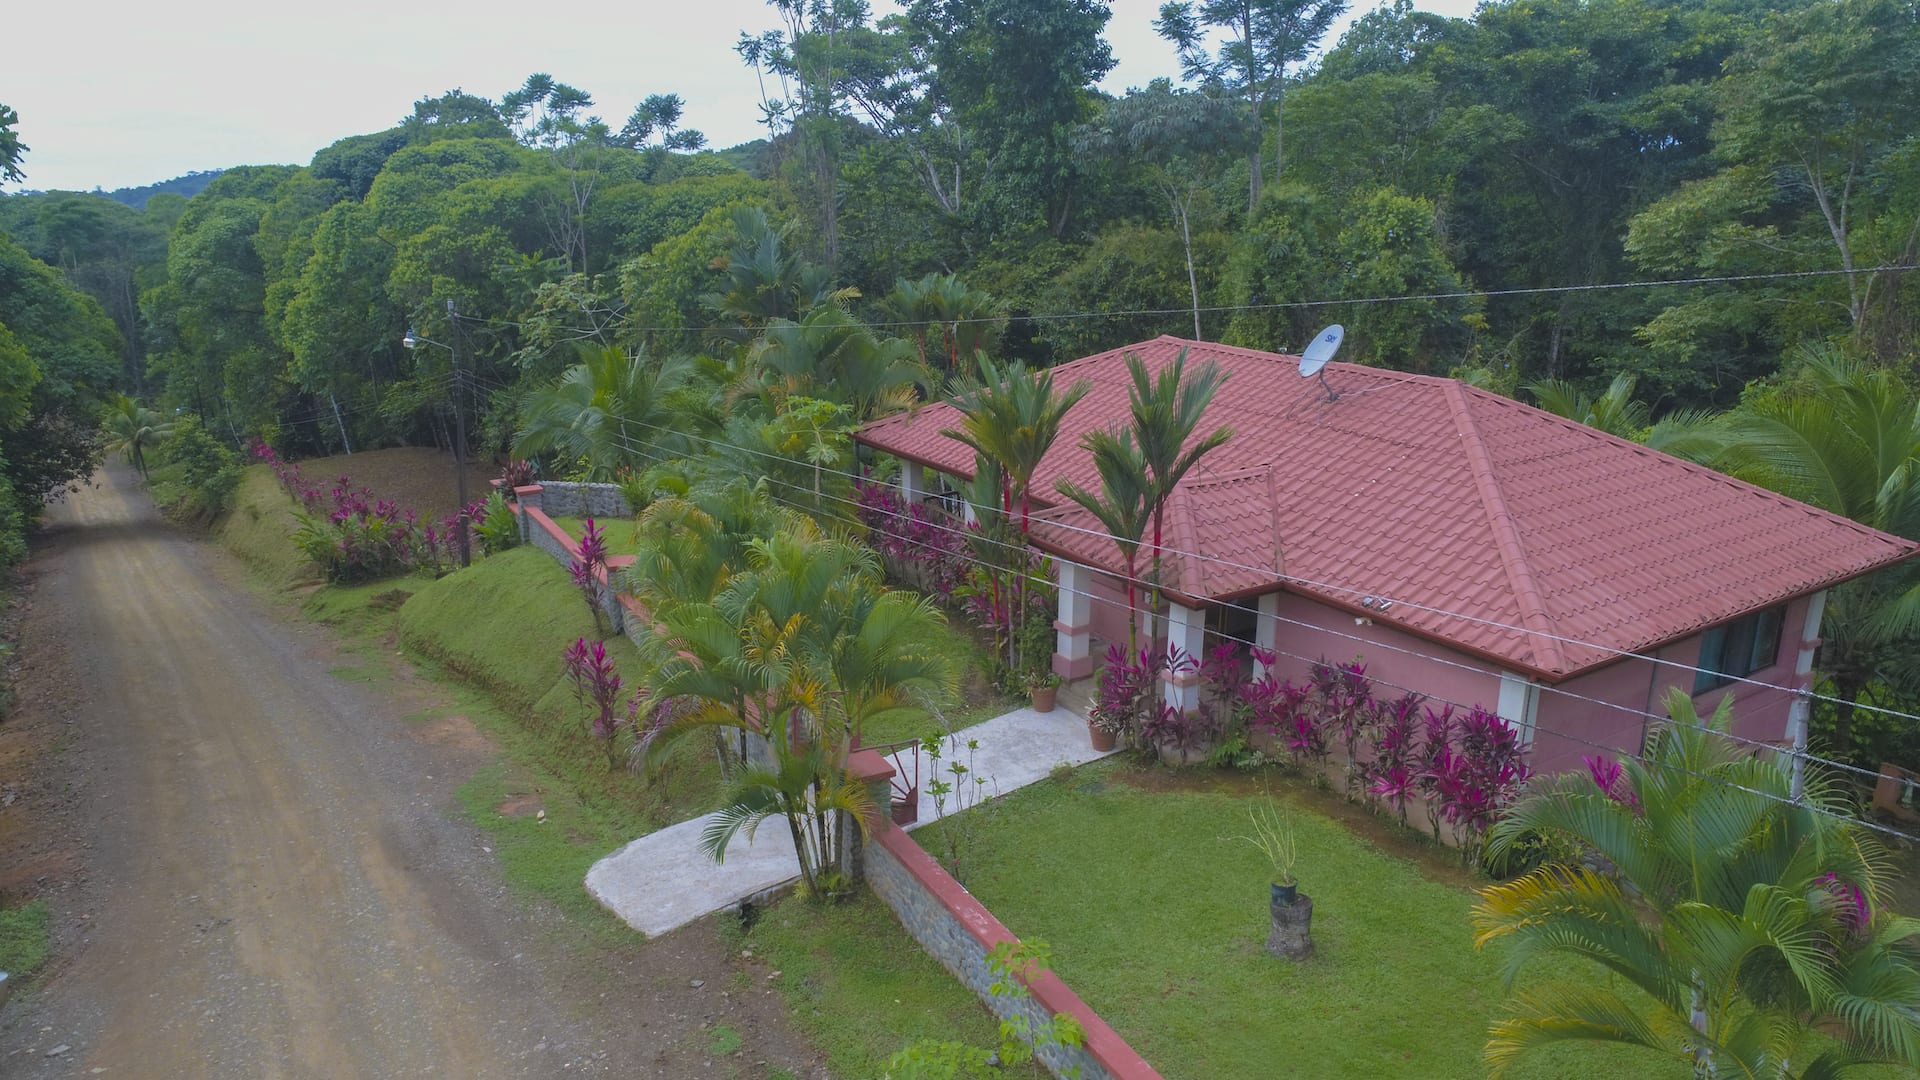 1.9 ACRES - 3 Bedroom Home With Pool And Good Access!!!!